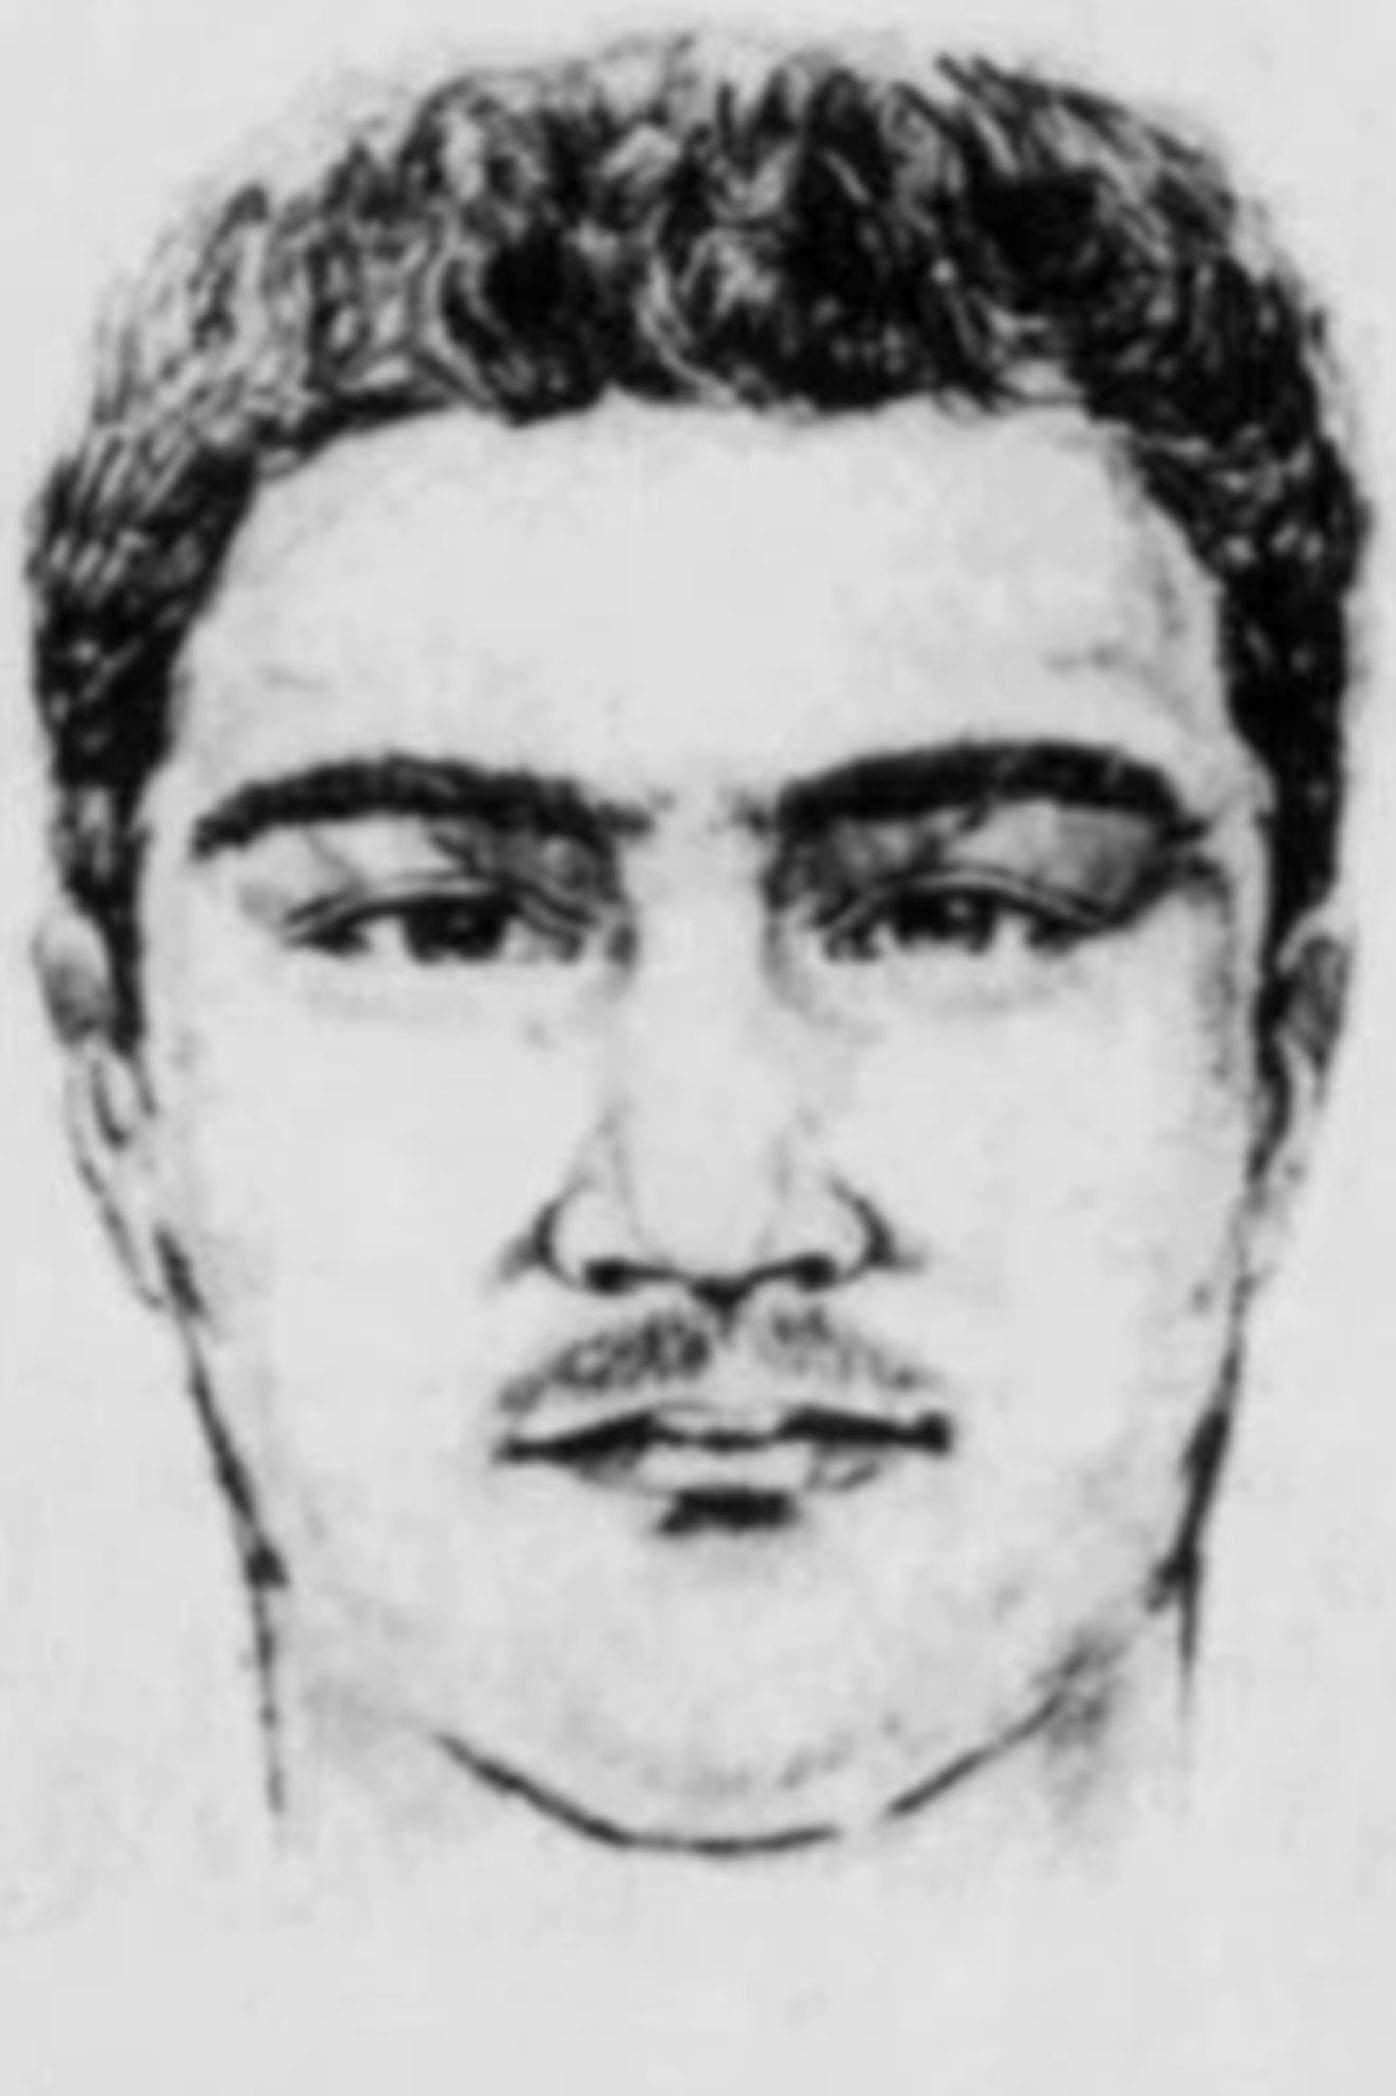 Police released this sketch of the 'Pillowcase rapist' during the lengthy search.